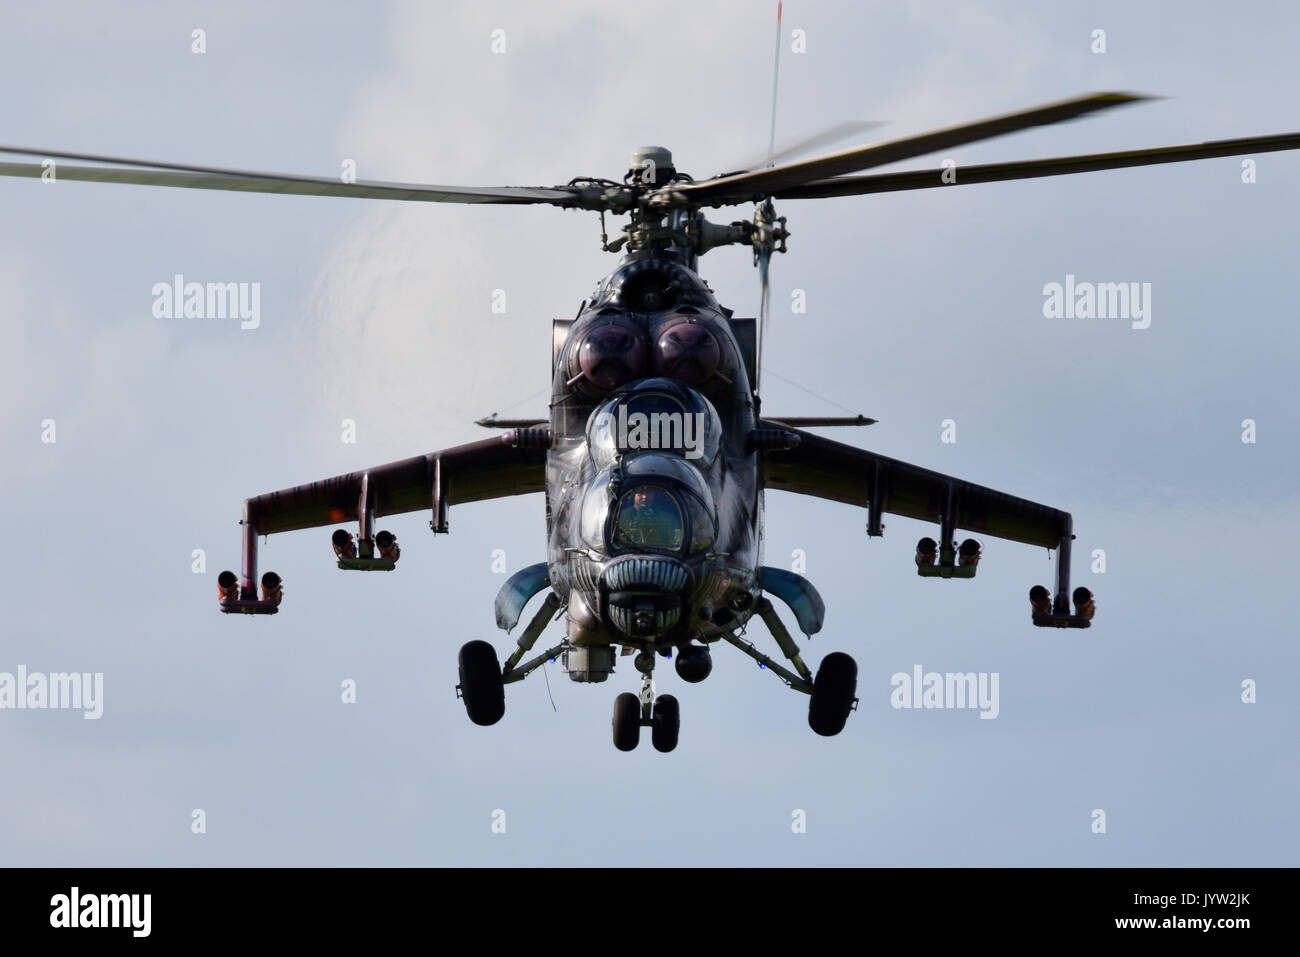 mil-mi-24-mi-35-hind-gunship-attack-helicopter-of-czech-air-force-JYW2JK.jpg